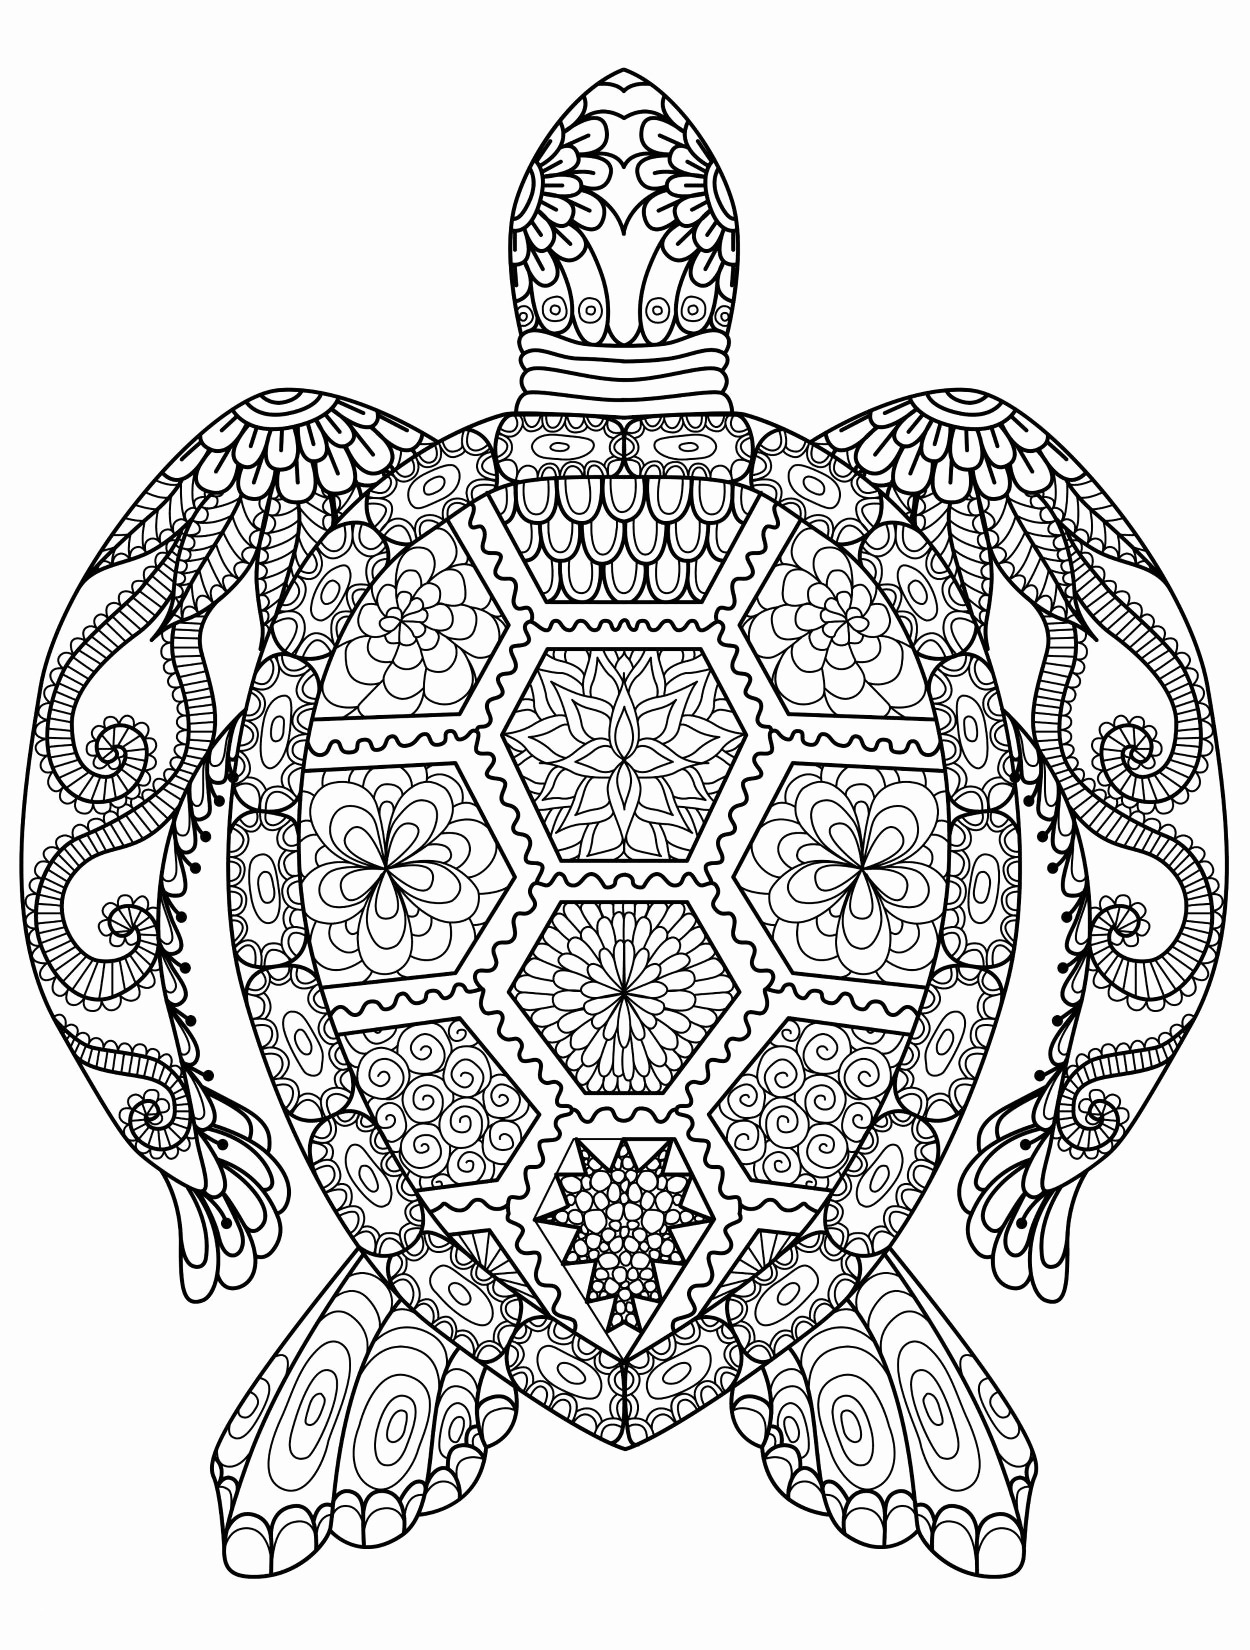 printable lighthouse coloring pages Download-Free Printable Lighthouse Coloring Pages Printable Lighthouse Coloring Pages Fresh Adults Coloring Pages 3-c